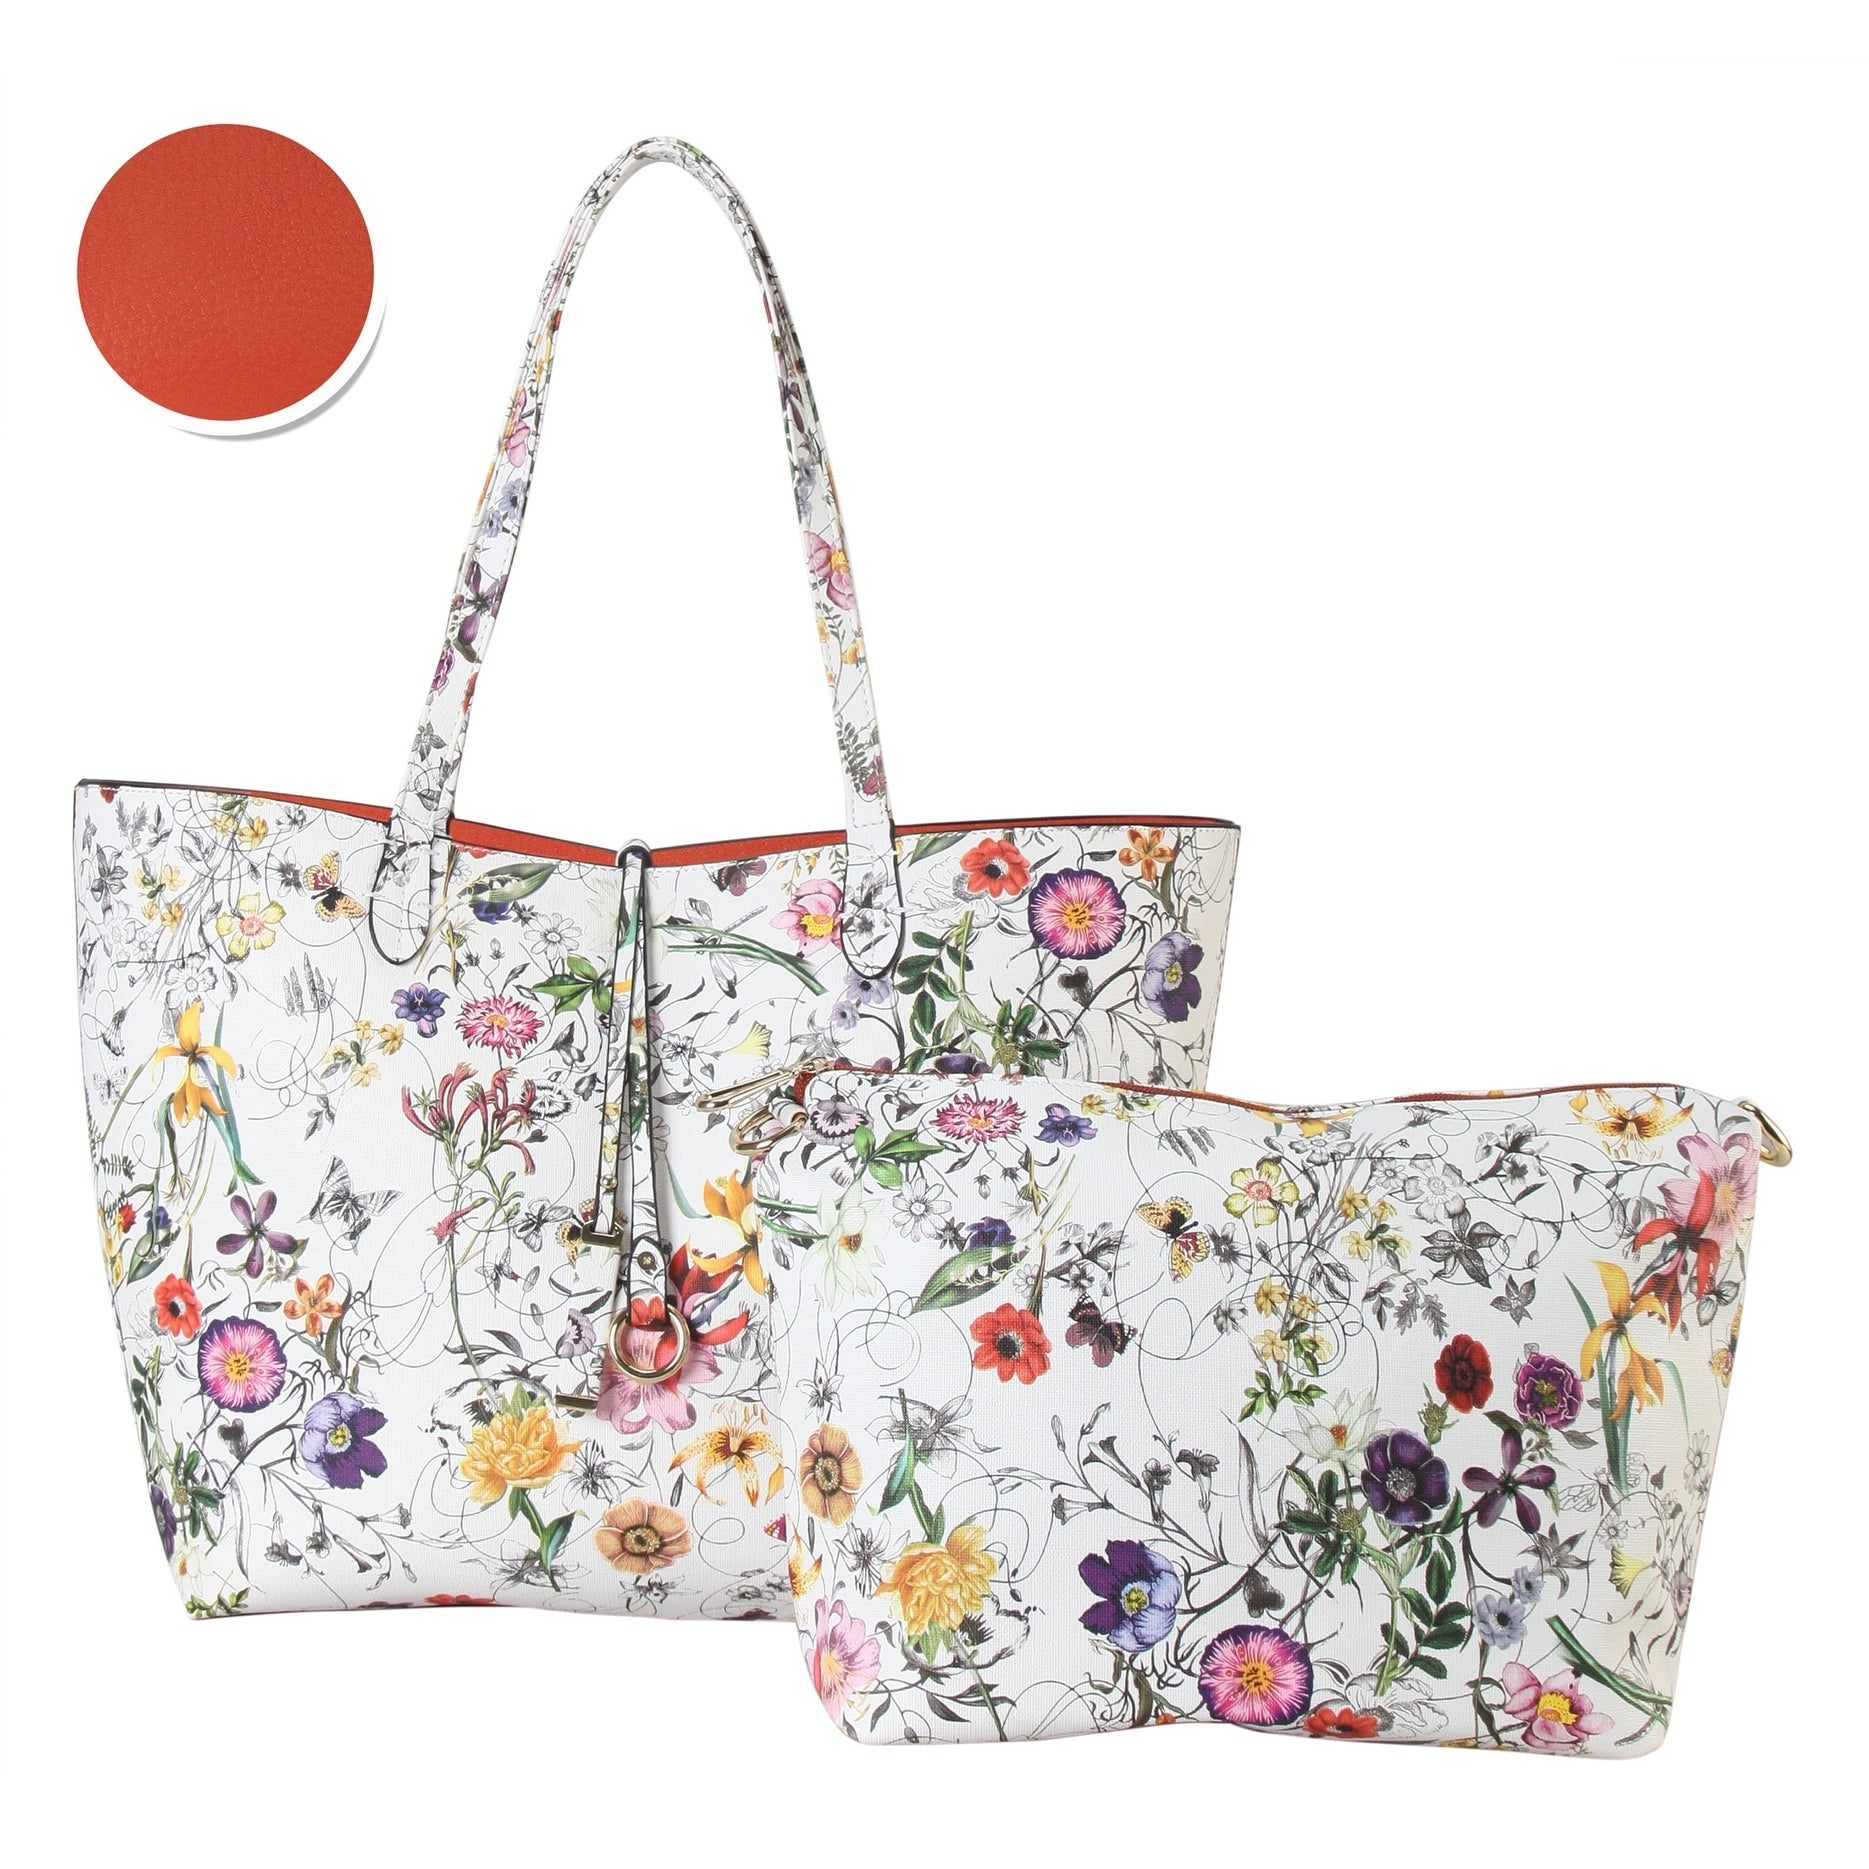 Handbags | Shop our Best Clothing & Shoes Deals Online at Overstock.com